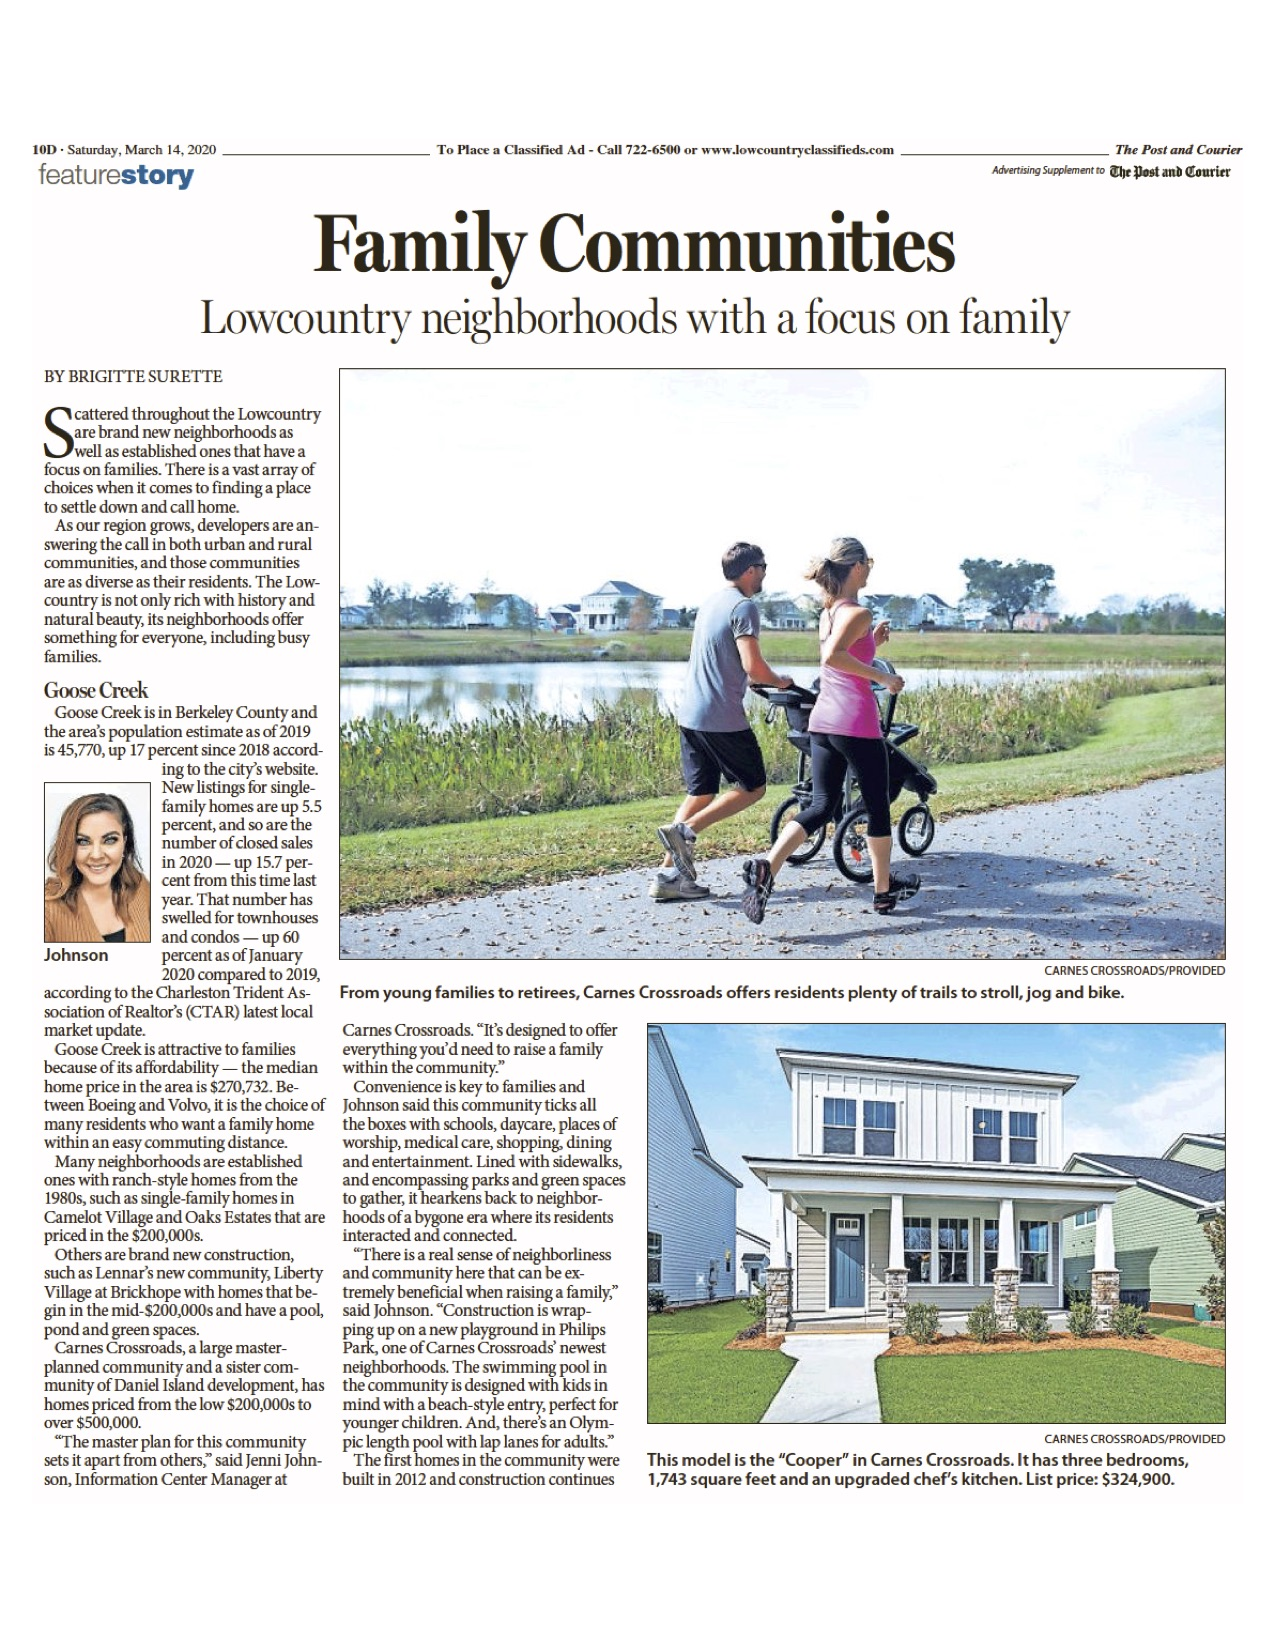 Post and Courier article interviews Mary Lou Wertz about family communities in the area.